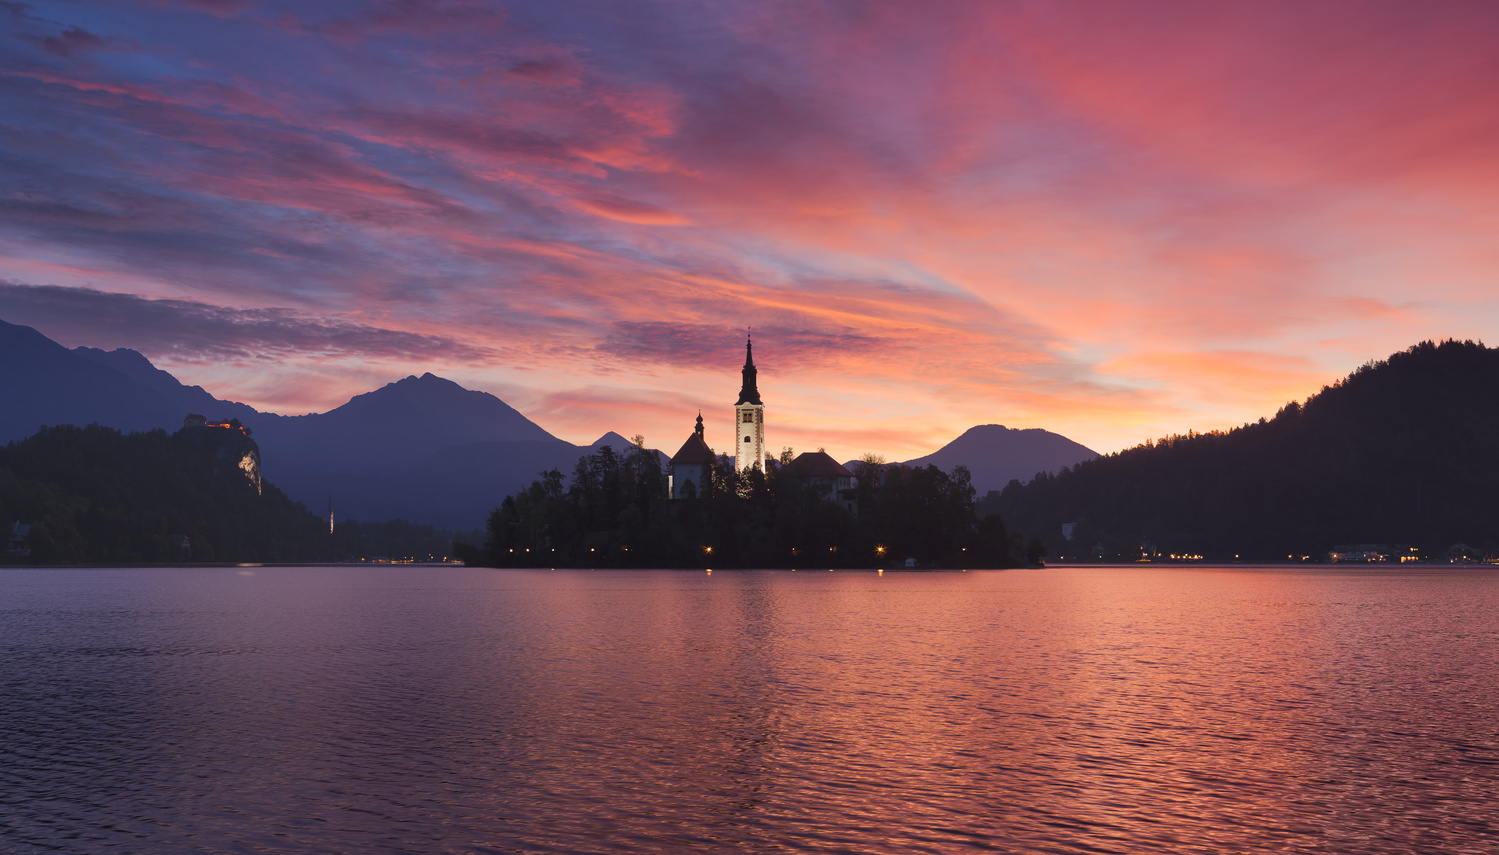 A fine morning at lake bled. by Thomas Welte